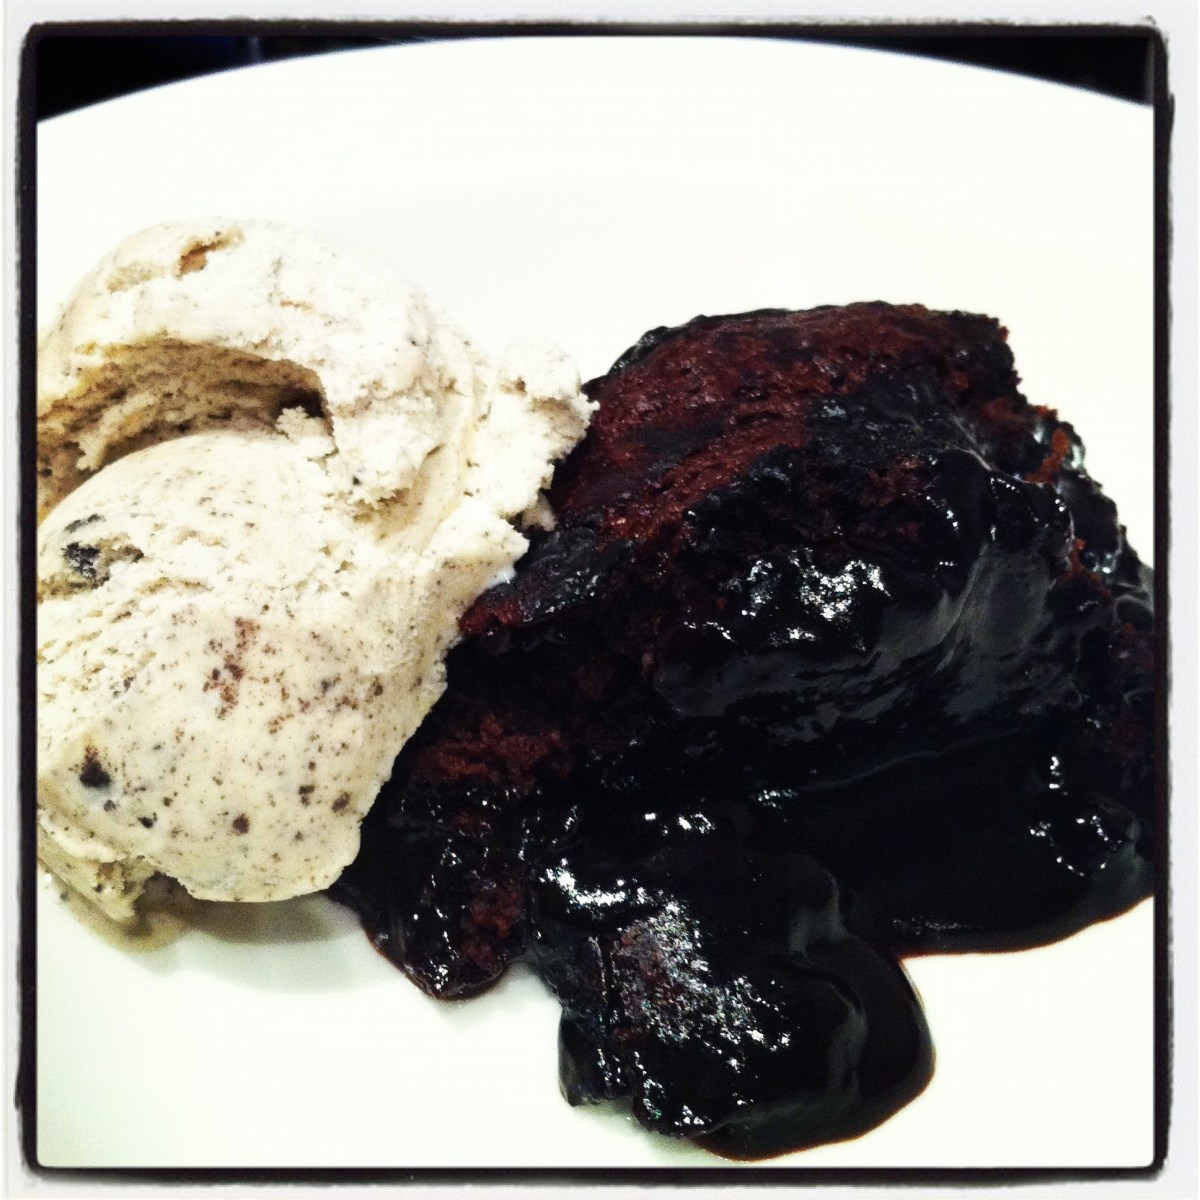 Chocolate self-saucing pudding (aka chocolate sludge)